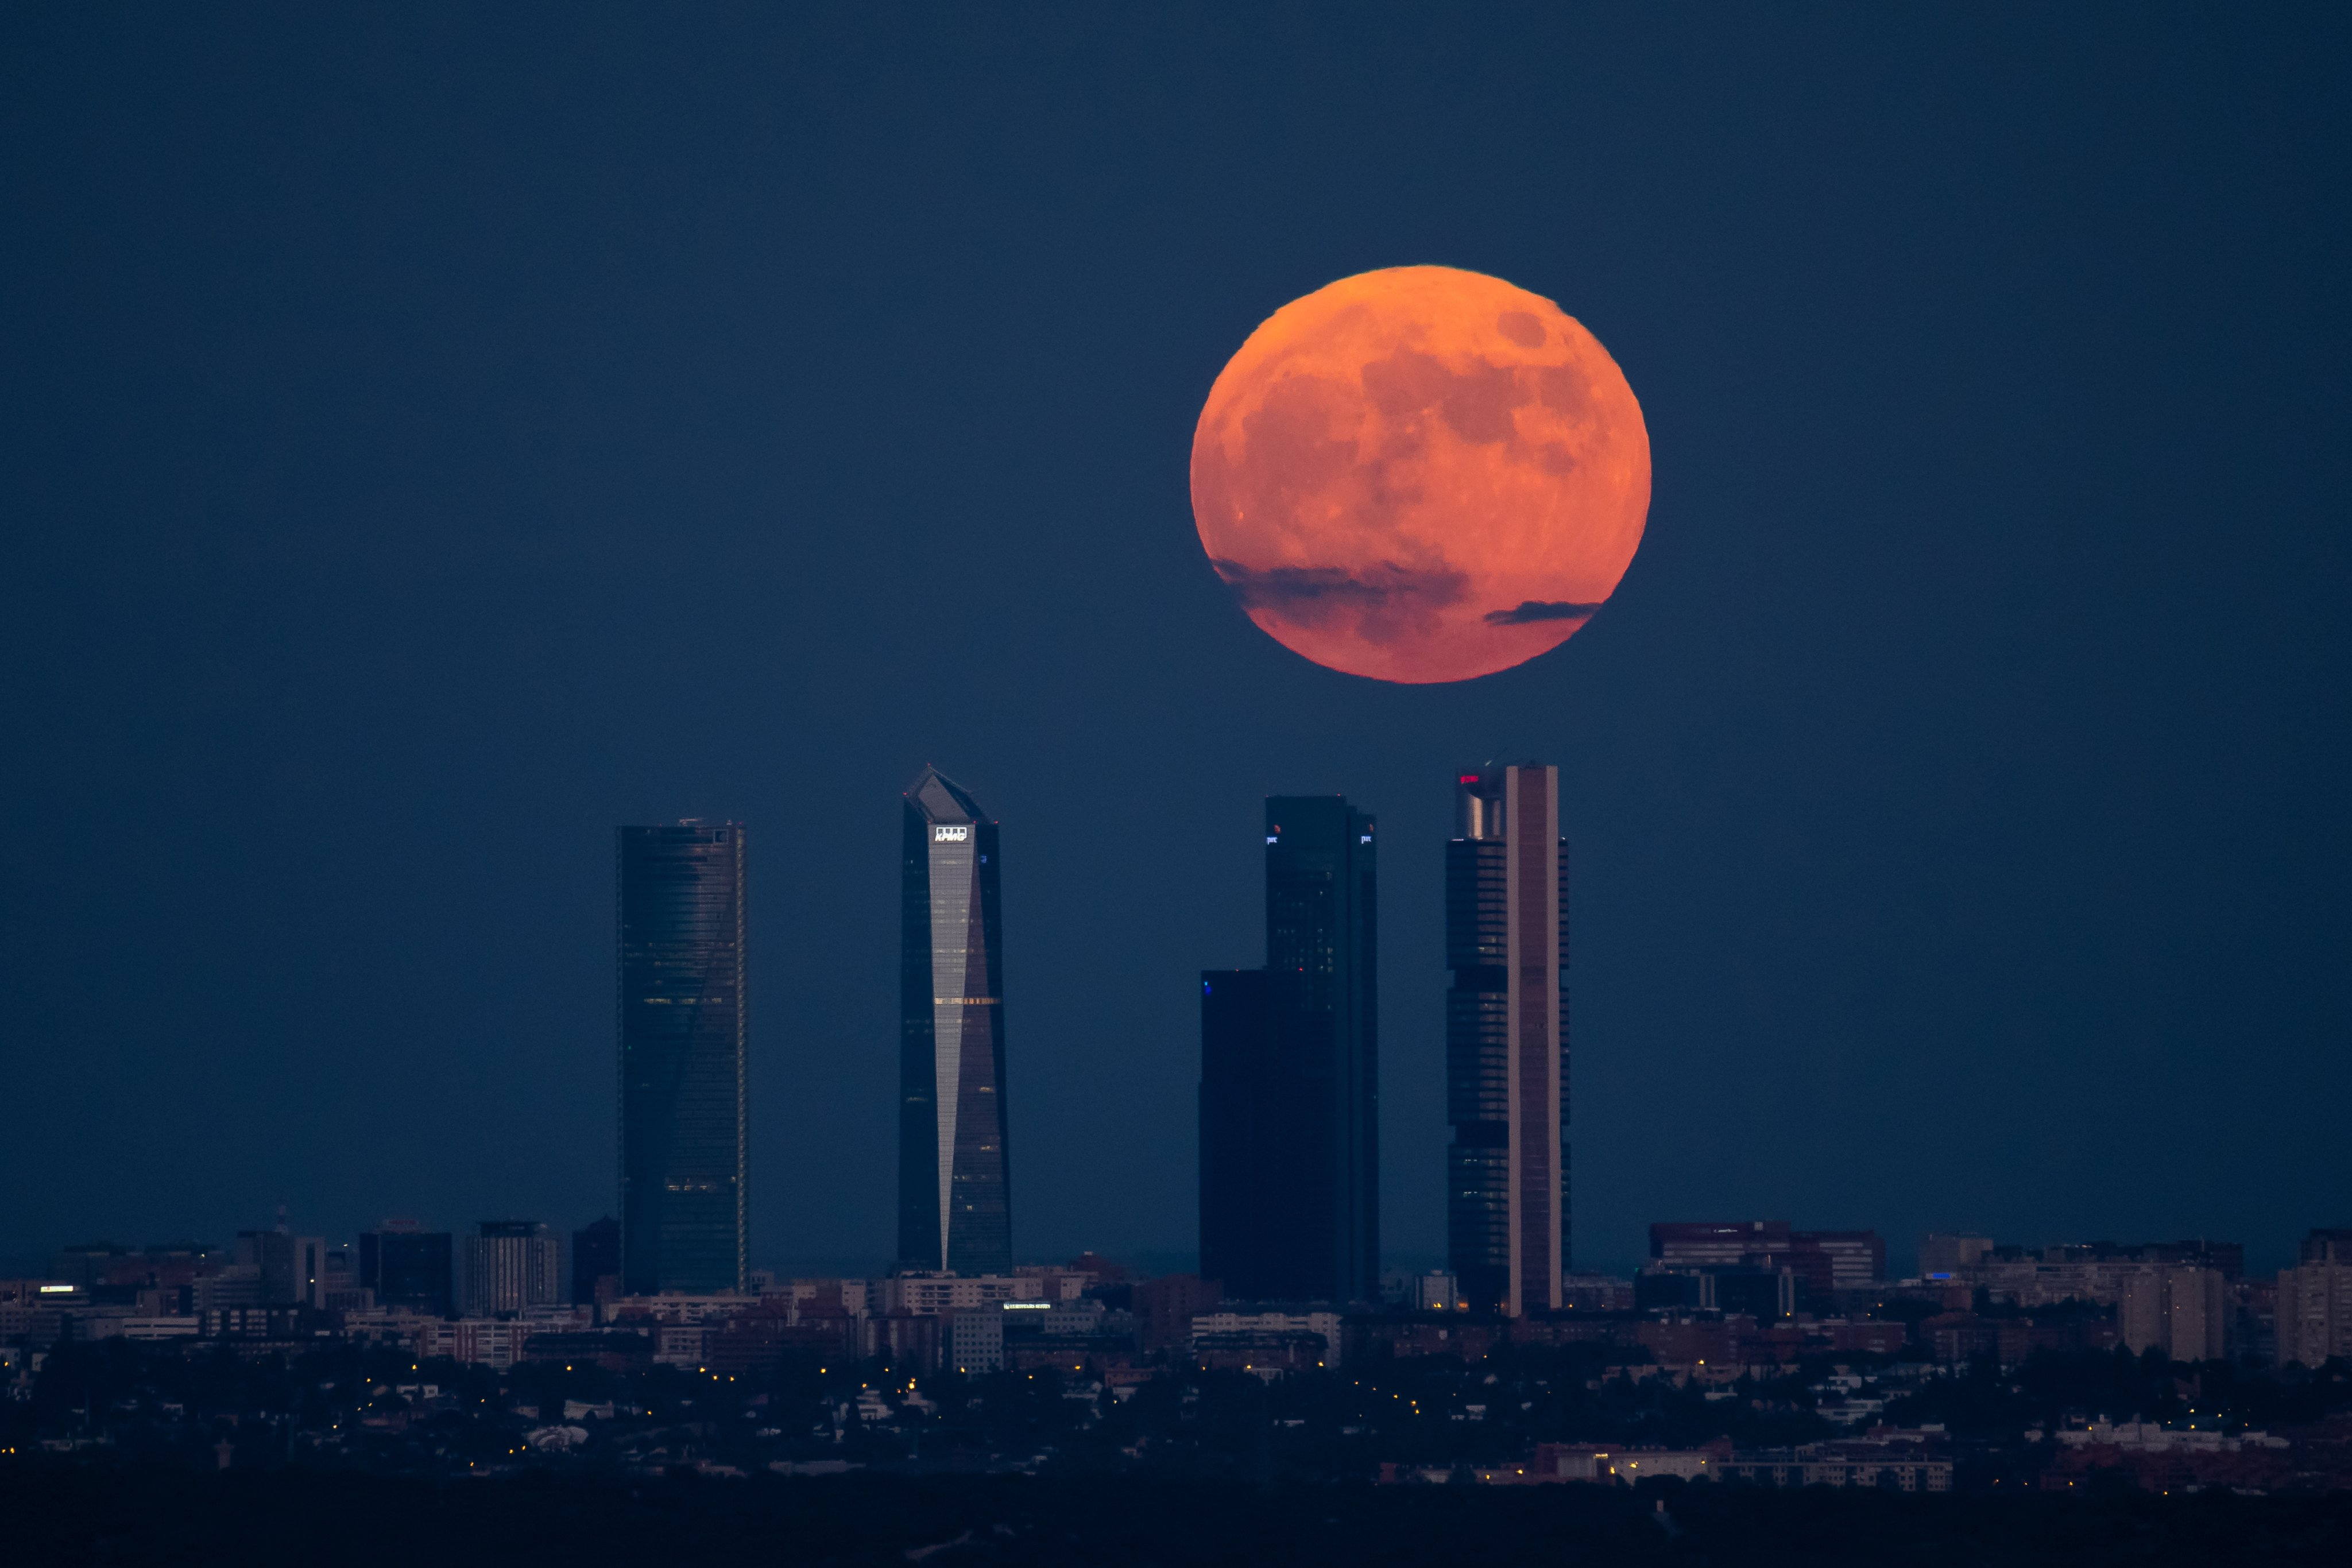 The full moon of June also known as Strawberry Moon rises